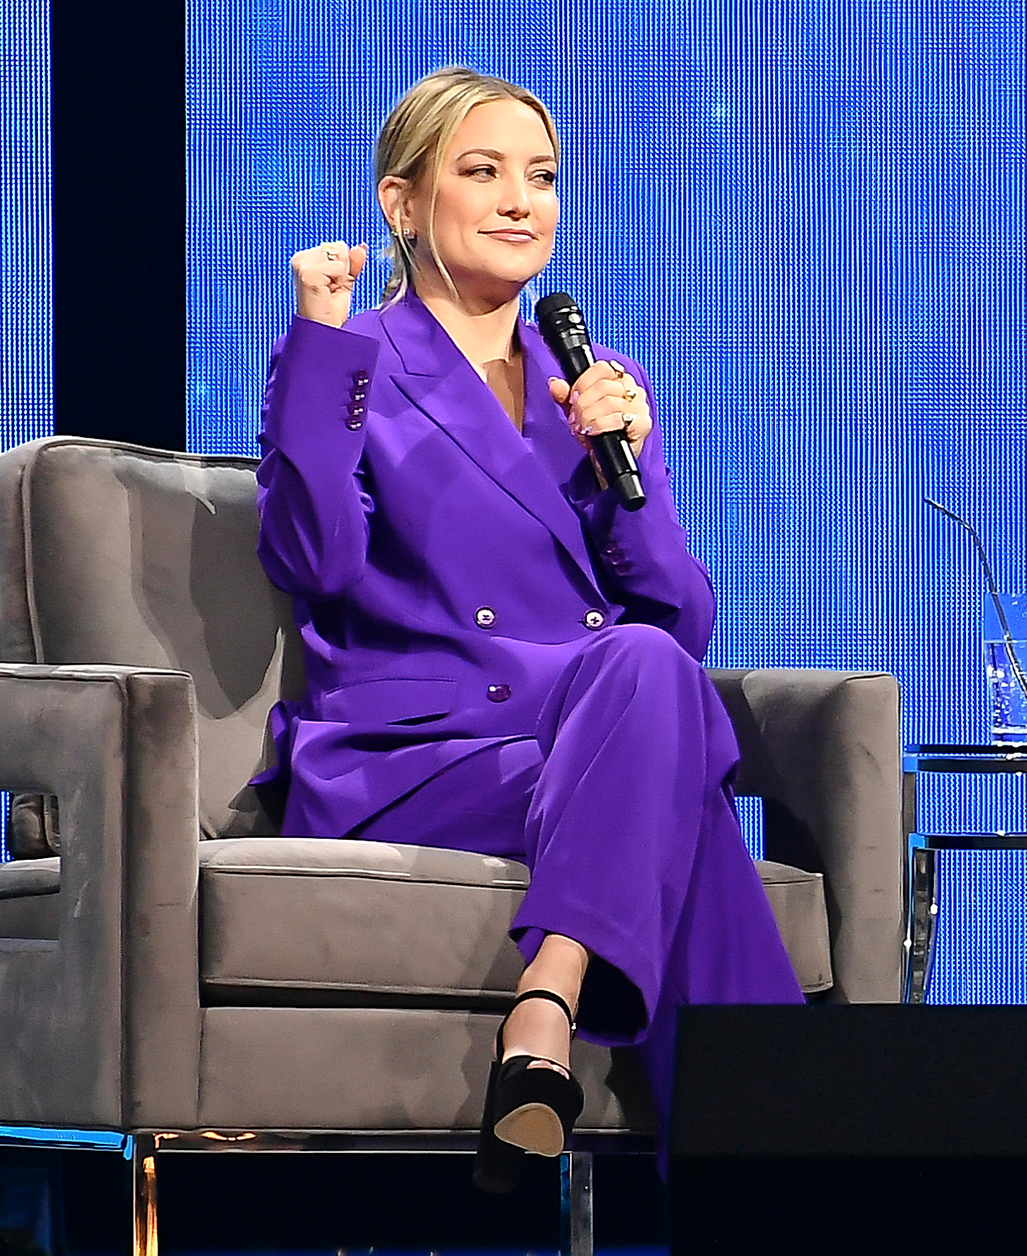 Oprah's 2020 Vision: Your Life In Focus Tour With Special Guest Kate Hudson